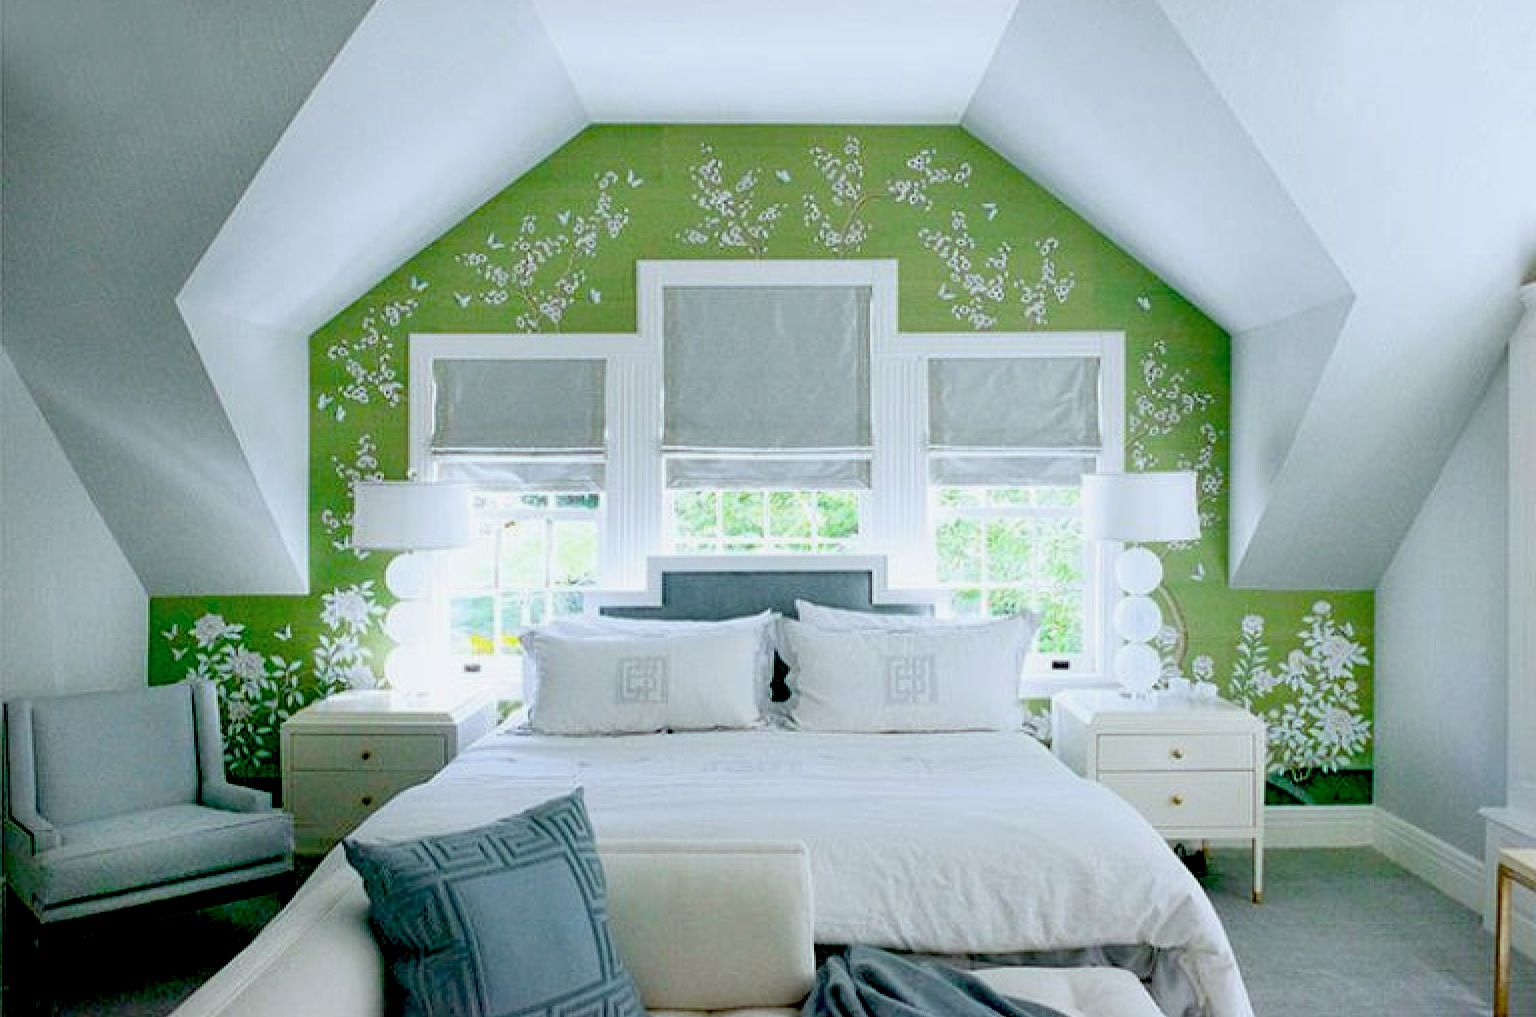 Feature wall in a dormer.